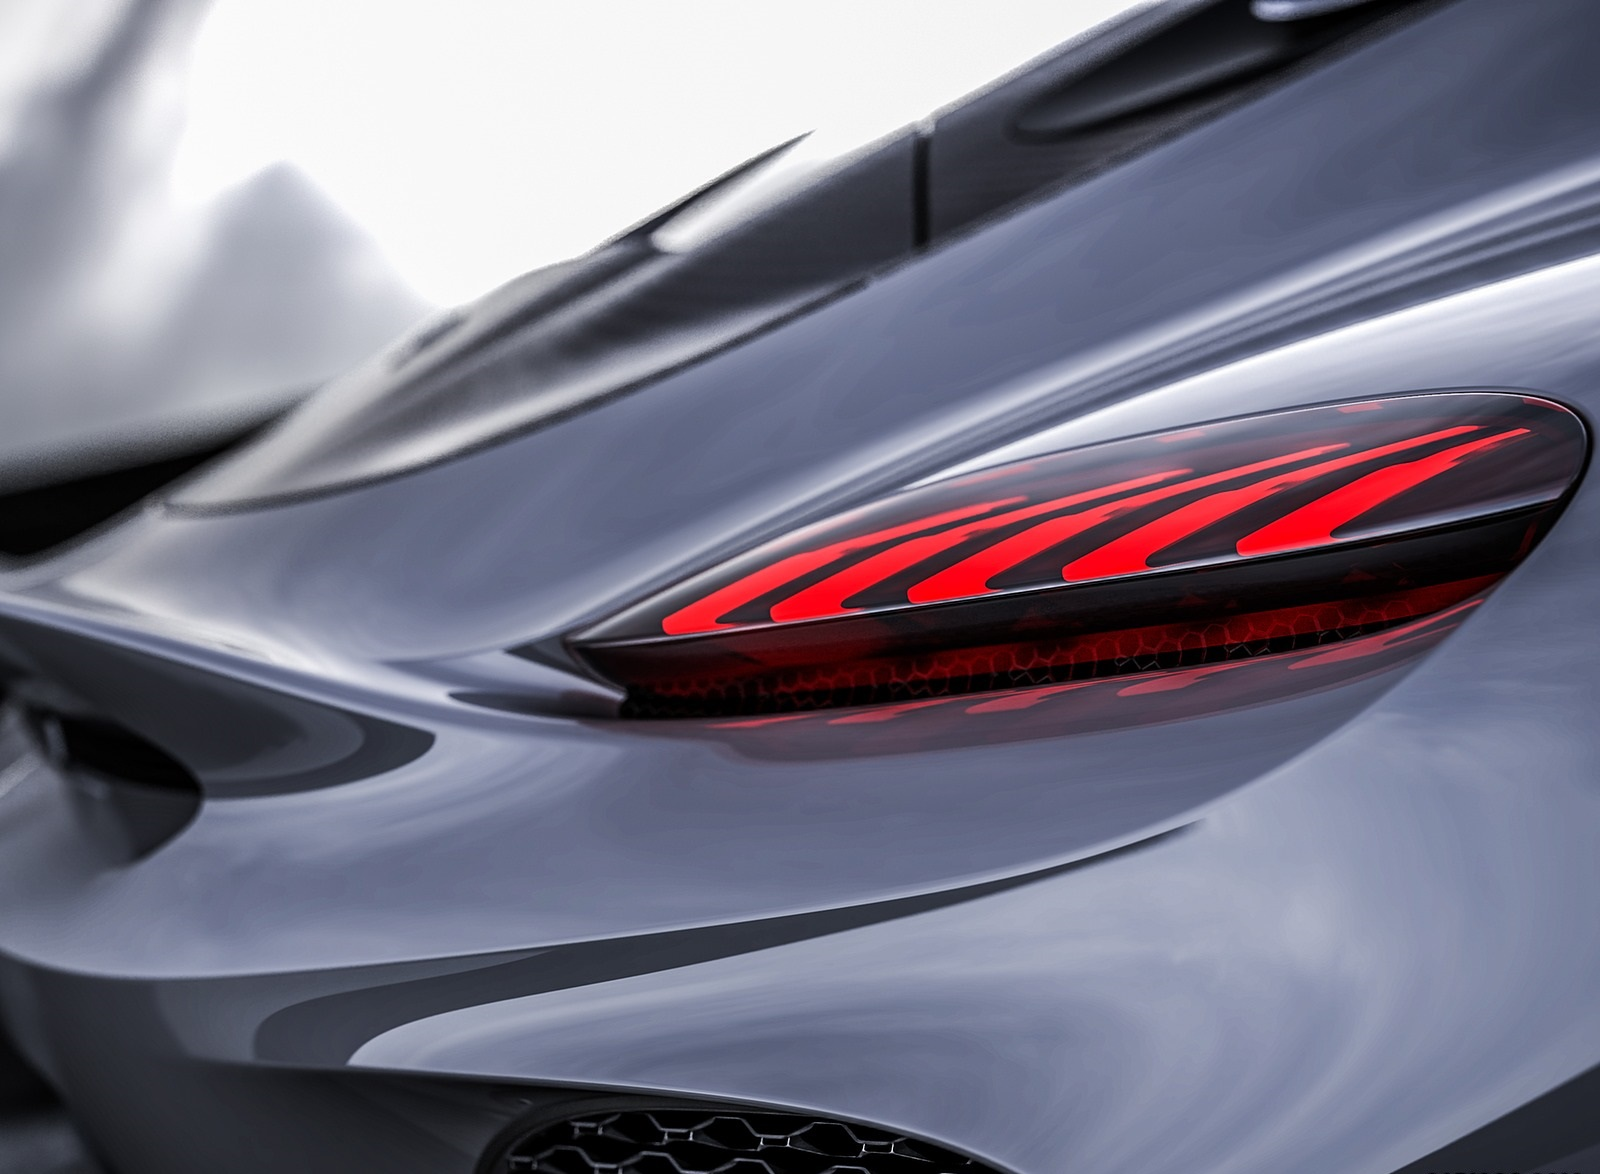 2021 Koenigsegg Gemera Tail Light Wallpapers #38 of 45